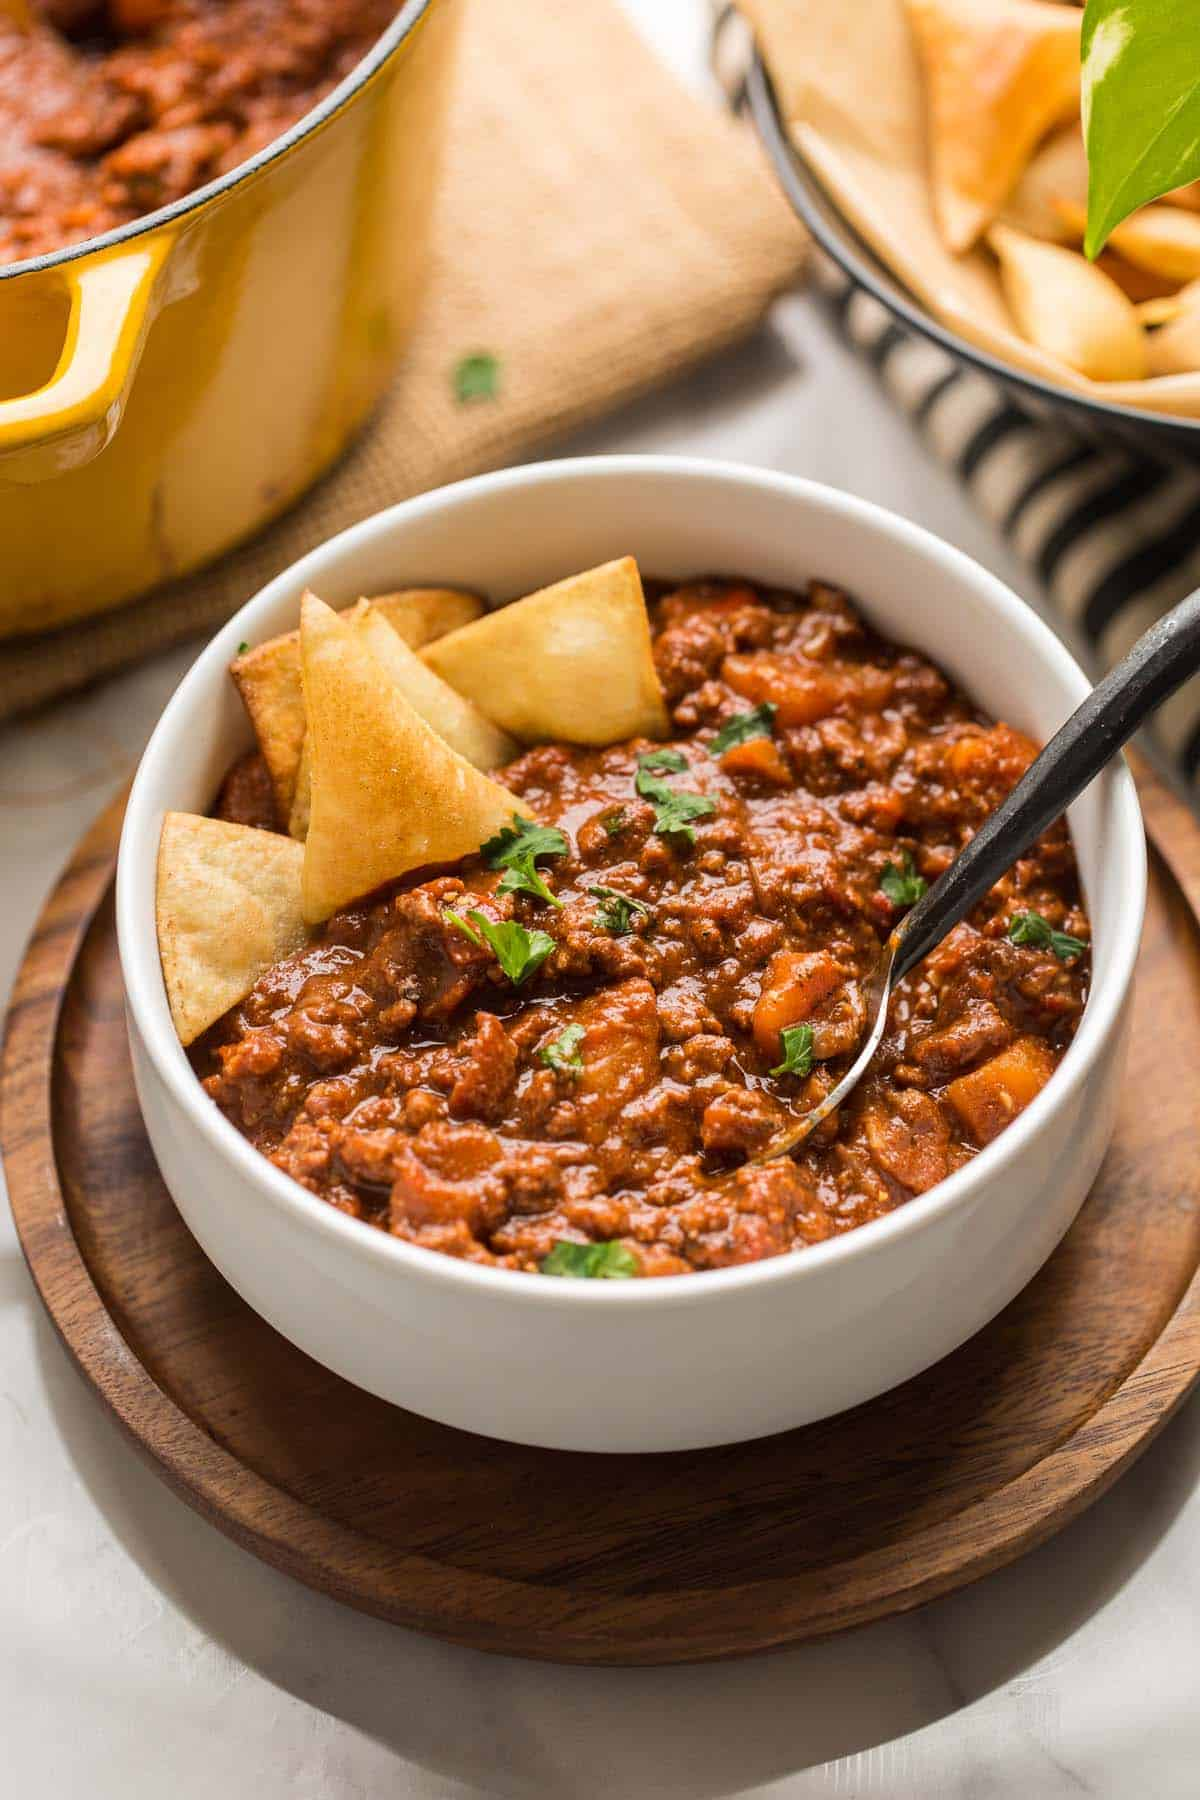 Smokey Sweet Potato & Beef Chocolate Chili